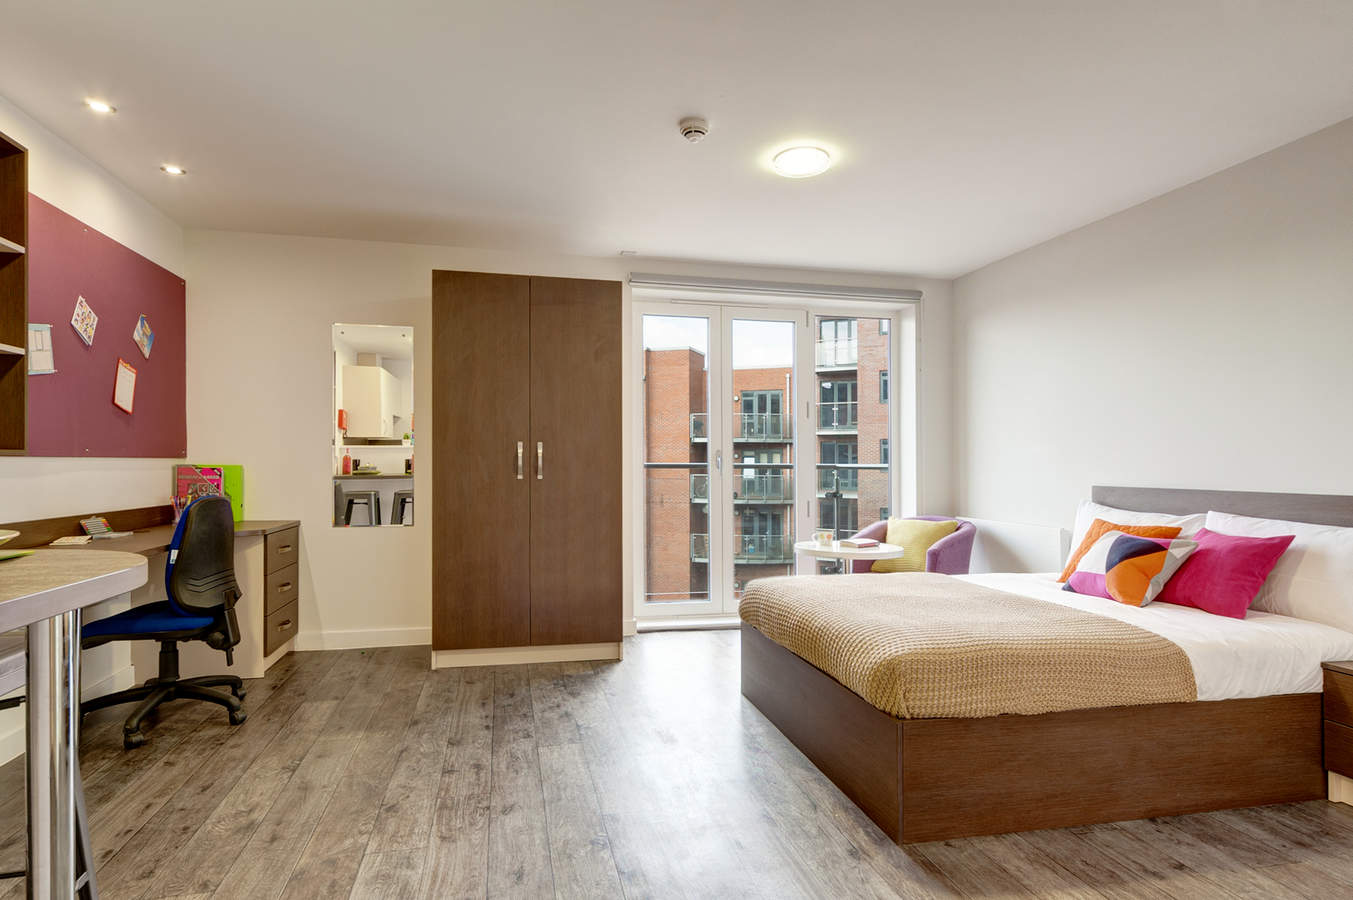 27-fresh-student-living-sheffield-cornerhouse-07-studio-photo-01_web